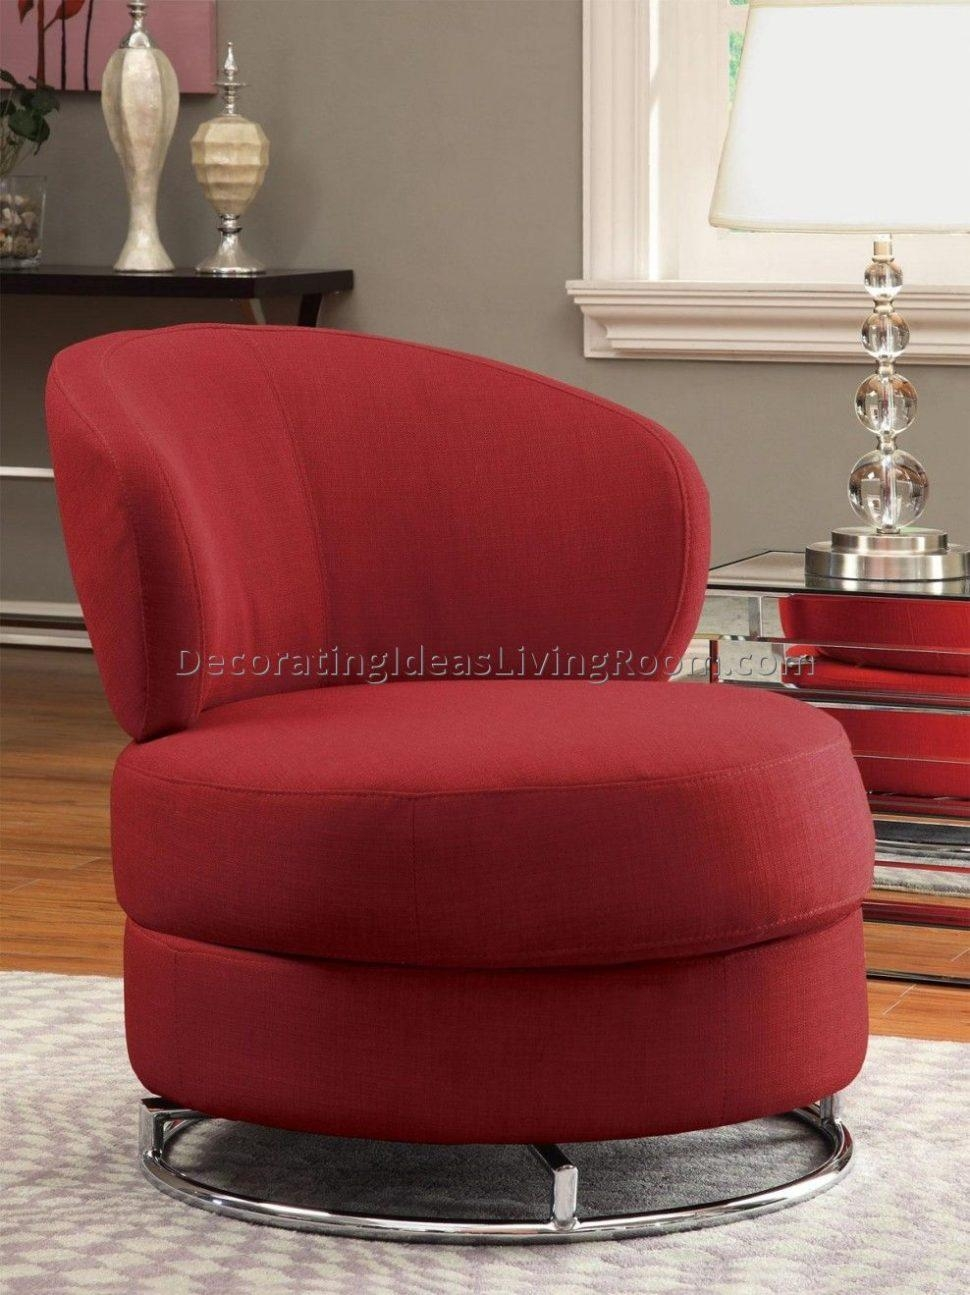 Sofas Center : Stupendous Circle Sofa Chair Pictures Design Round Pertaining To Round Sofa Chair (Image 20 of 20)